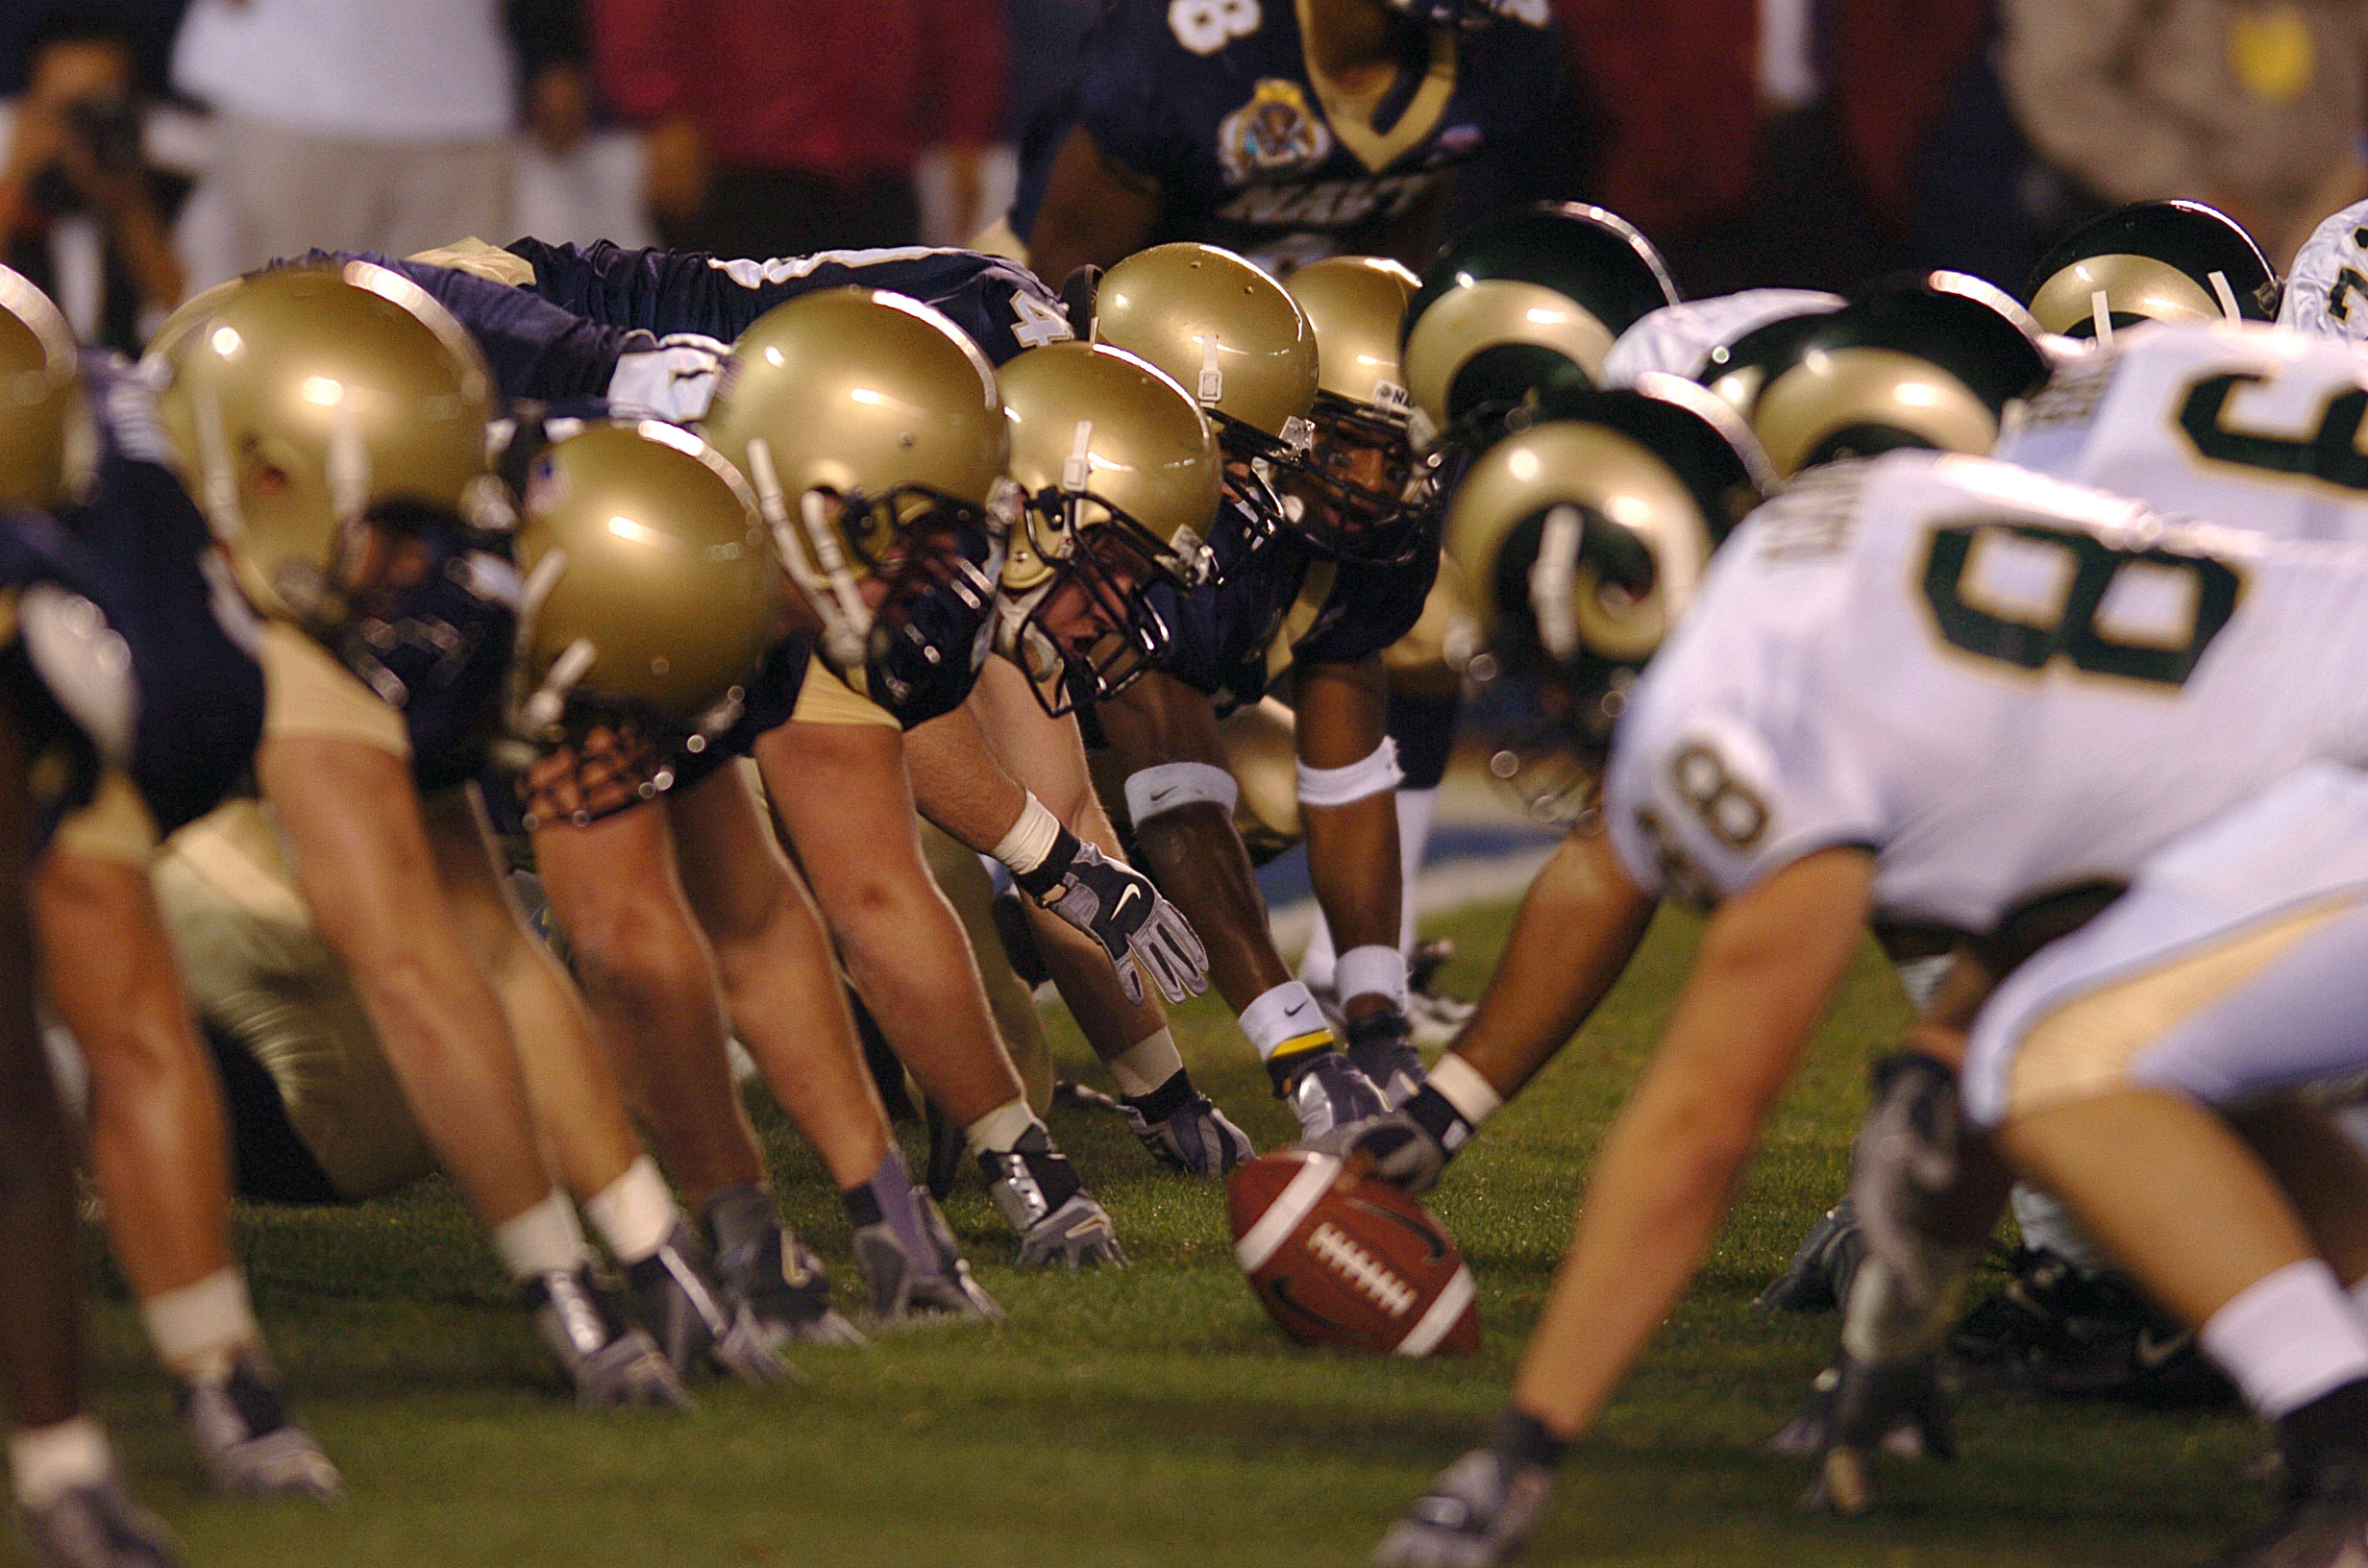 051222-N-9866B-079 San Diego (Dec. 22, 2005) - The U.S. Naval Academy Midshipmen position themselves defensively in preparation for a play by the Colorado State Rams. Navy defeated Colorado State 51-30 at the inaugural Poinsettia Bowl in San Diego at Qualcomm Stadium. U.S. Navy photo by Journalist 2nd Class Zack Baddorf (RELEASED)